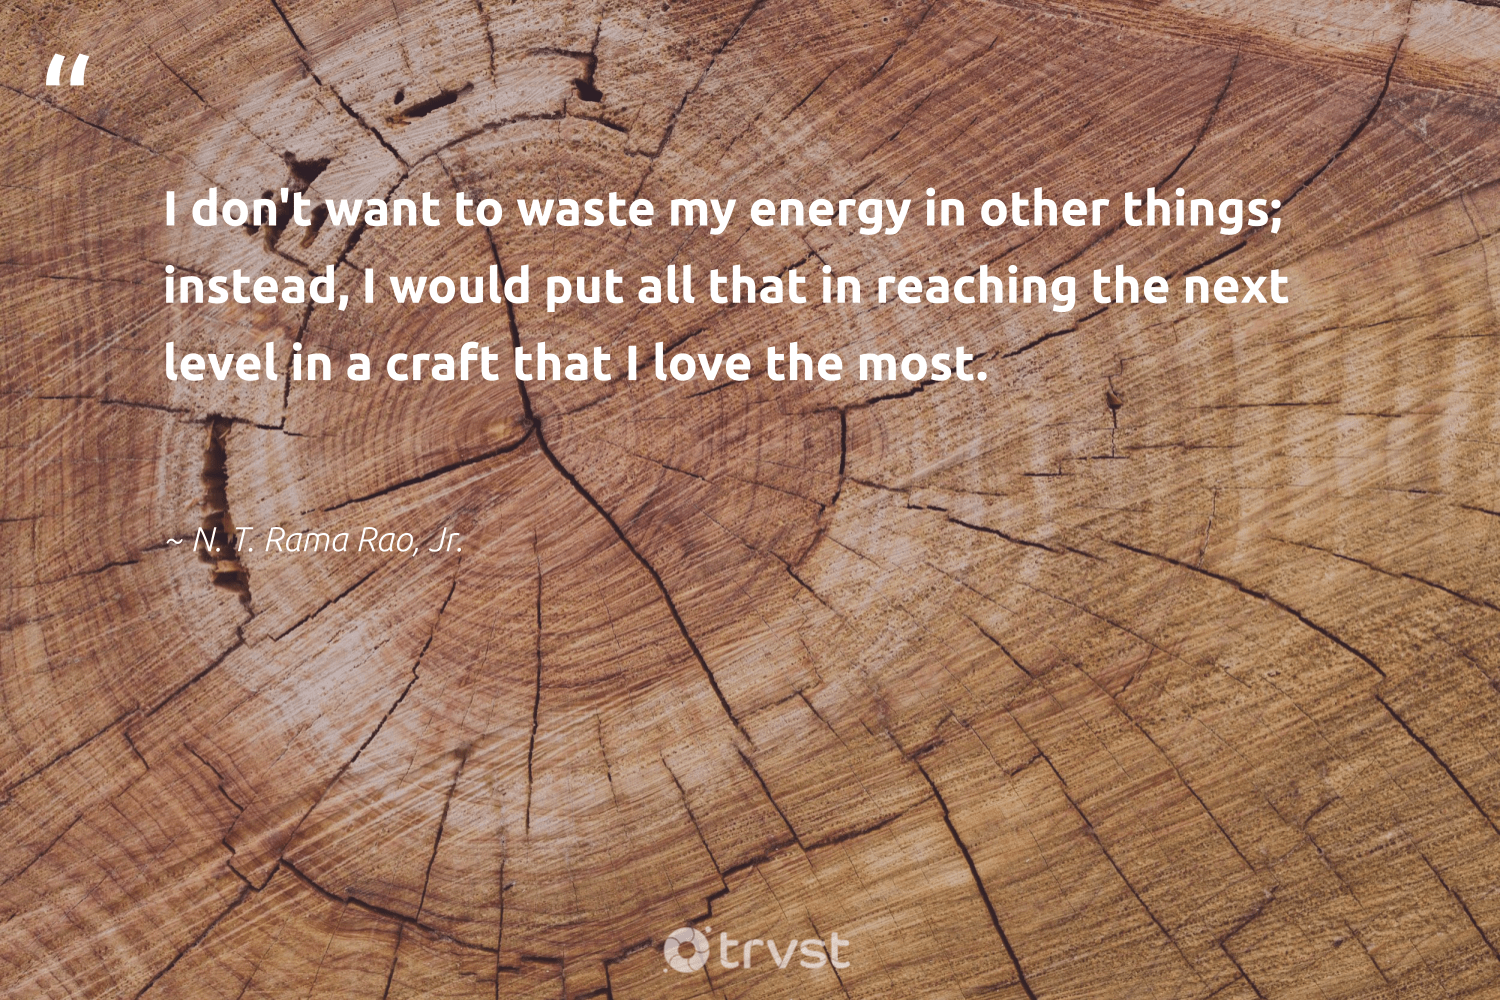 """""""I don't want to waste my energy in other things; instead, I would put all that in reaching the next level in a craft that I love the most.""""  - N. T. Rama Rao, Jr. #trvst #quotes #love #waste #energy #makeadifference #beinspired #dogood #dotherightthing #betterplanet #bethechange #weareallone"""